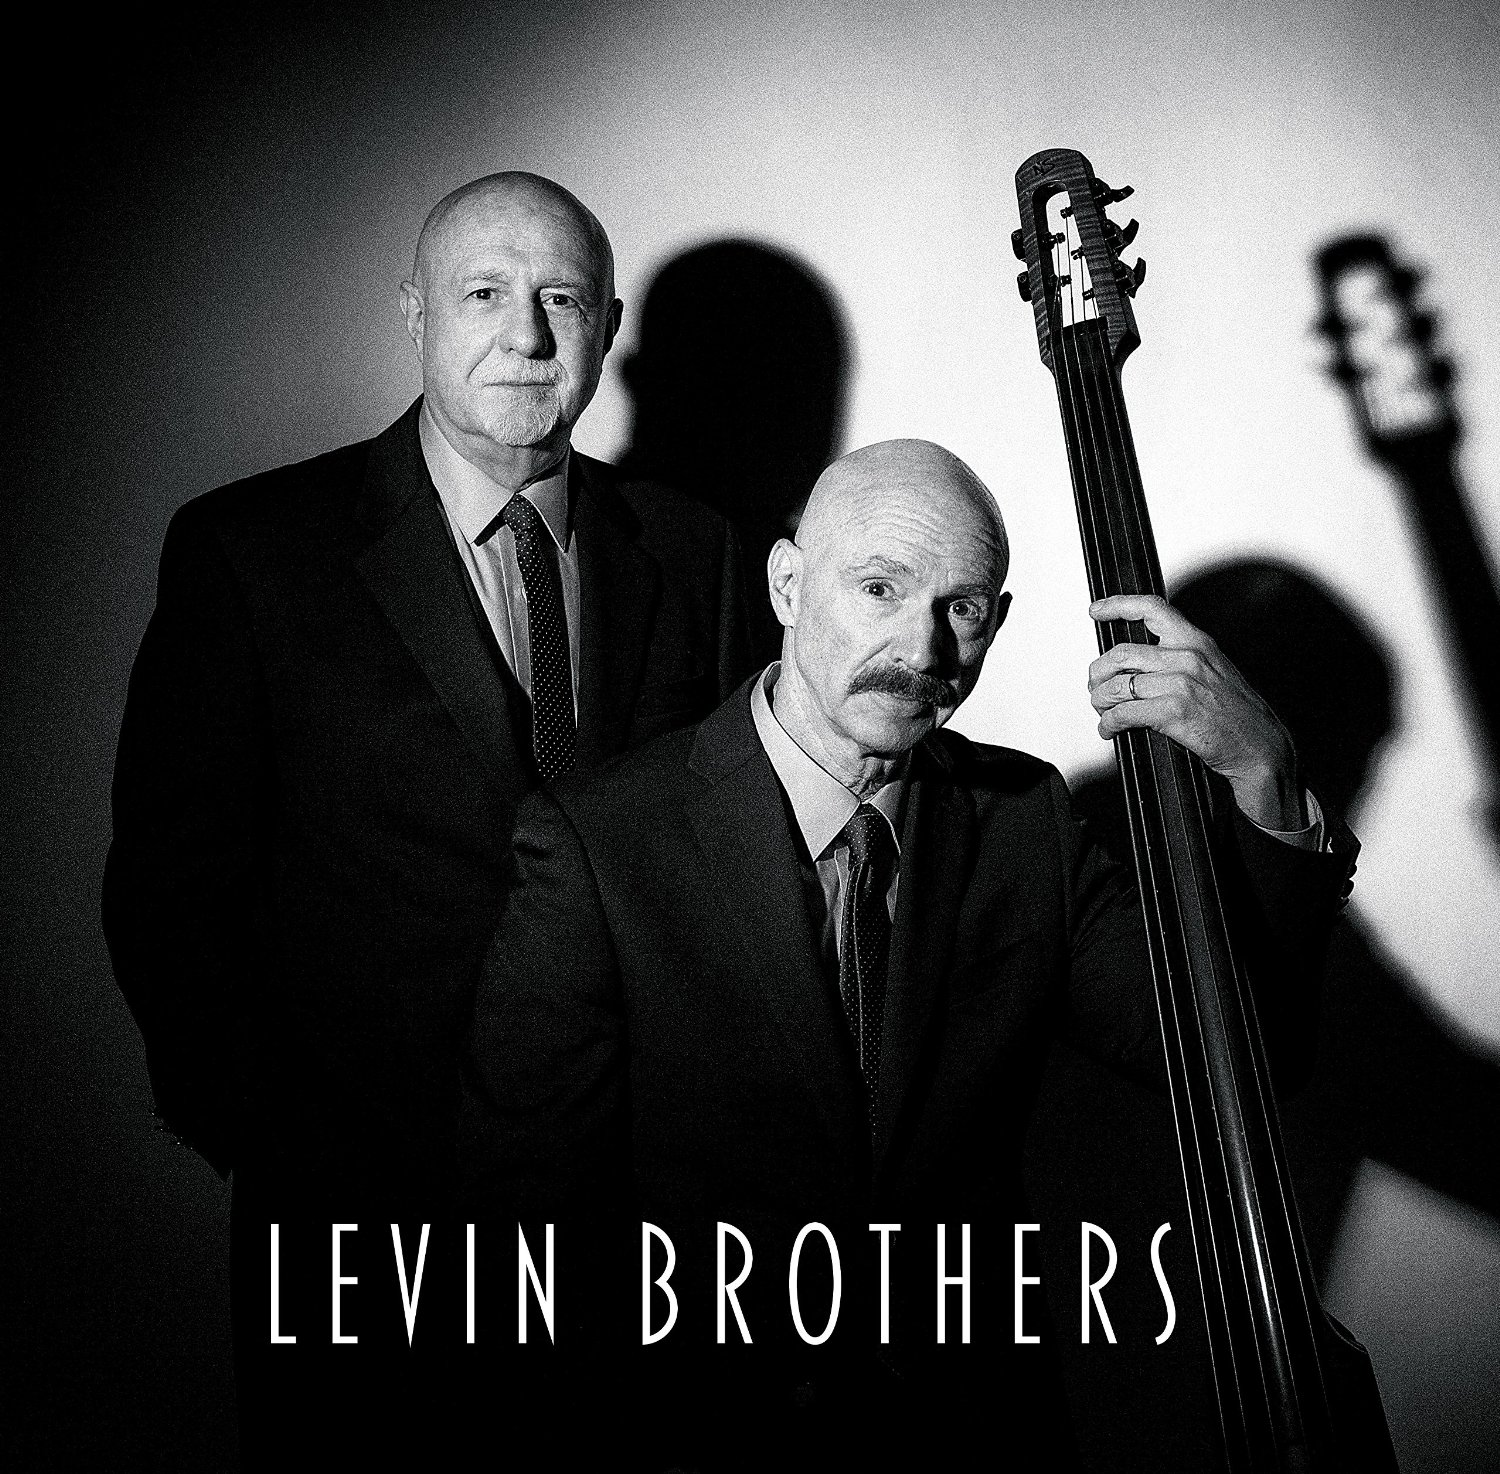 Levin Brothers — Levin Brothers